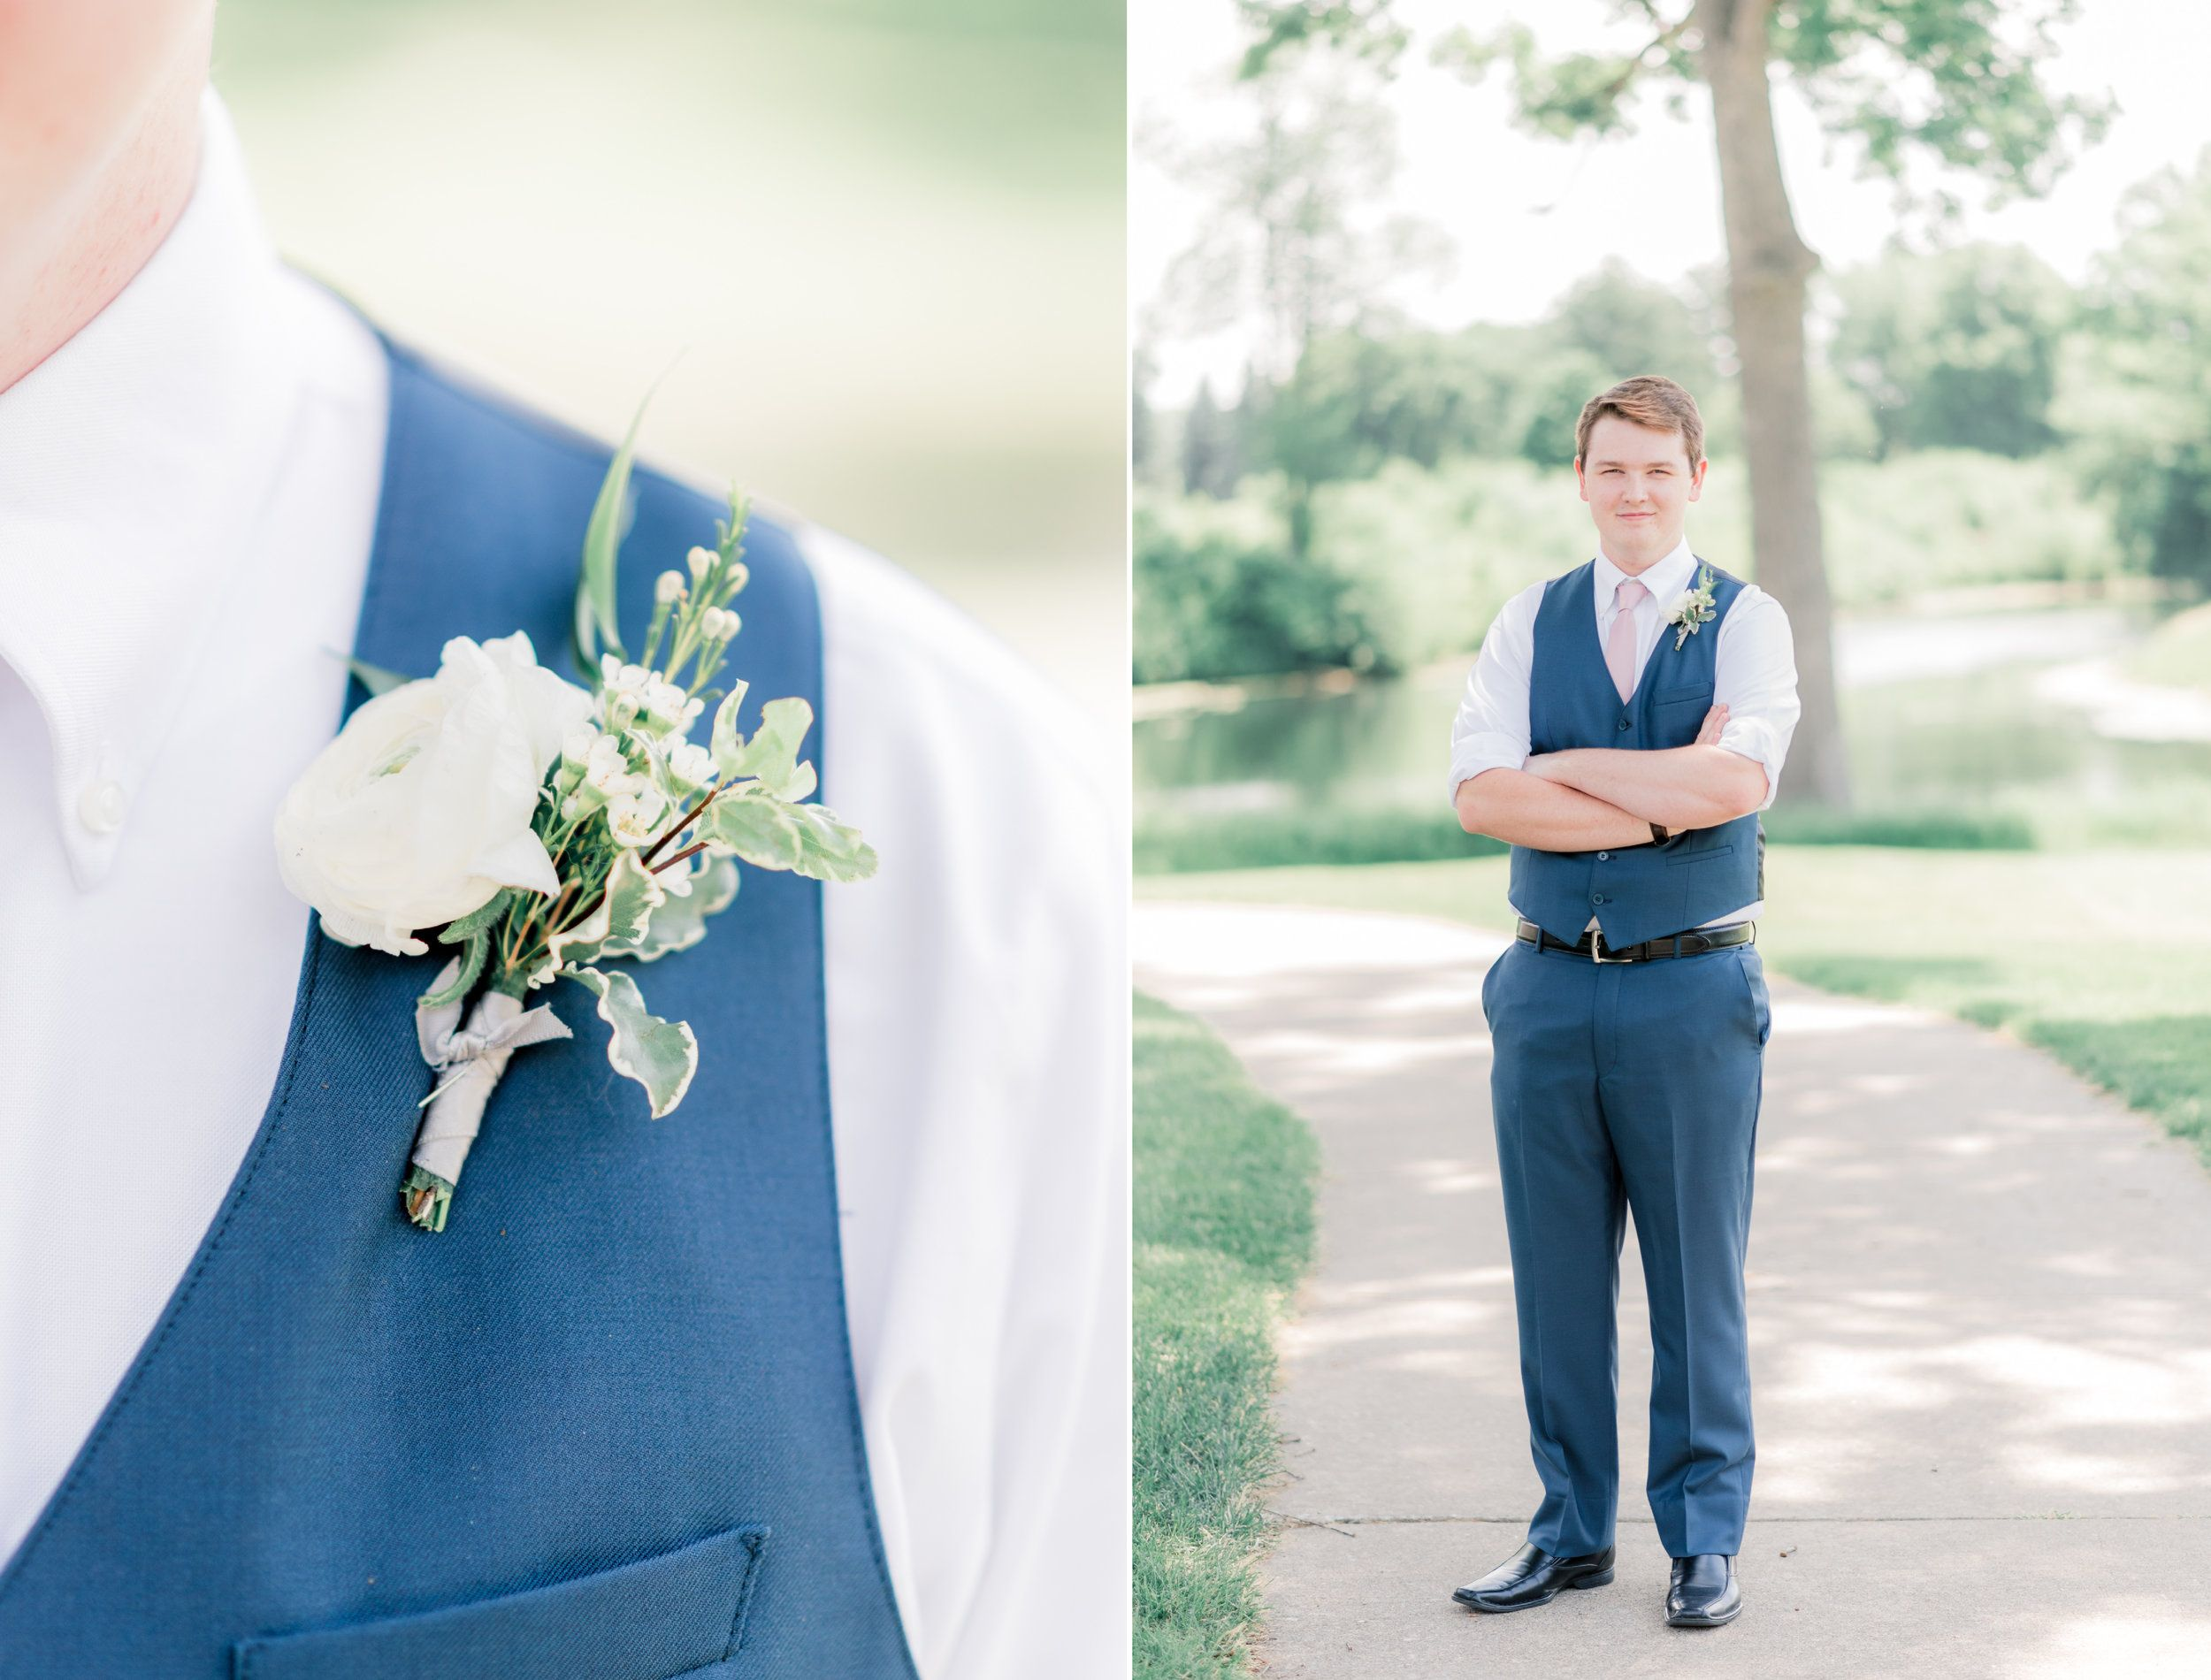 Malone wedding gigi boucher photography content pinterest